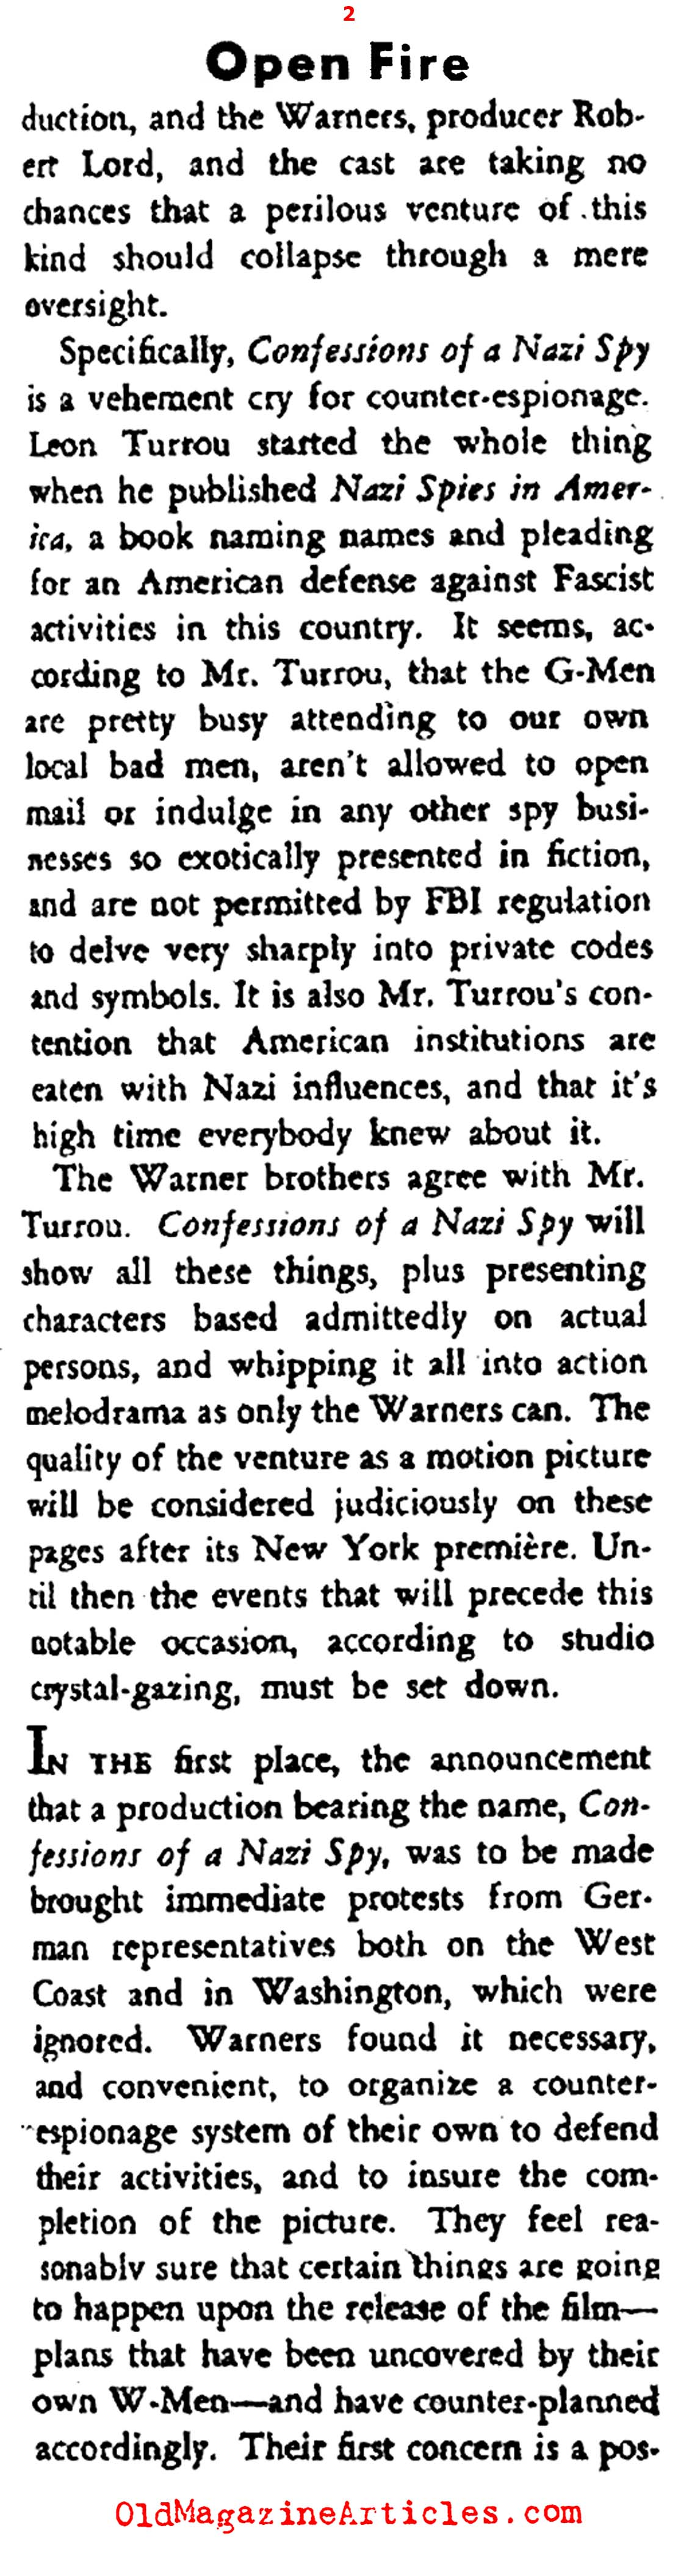 Warner Brothers Opens Fire on Nazi Germany (Stage Magazine, 1939)